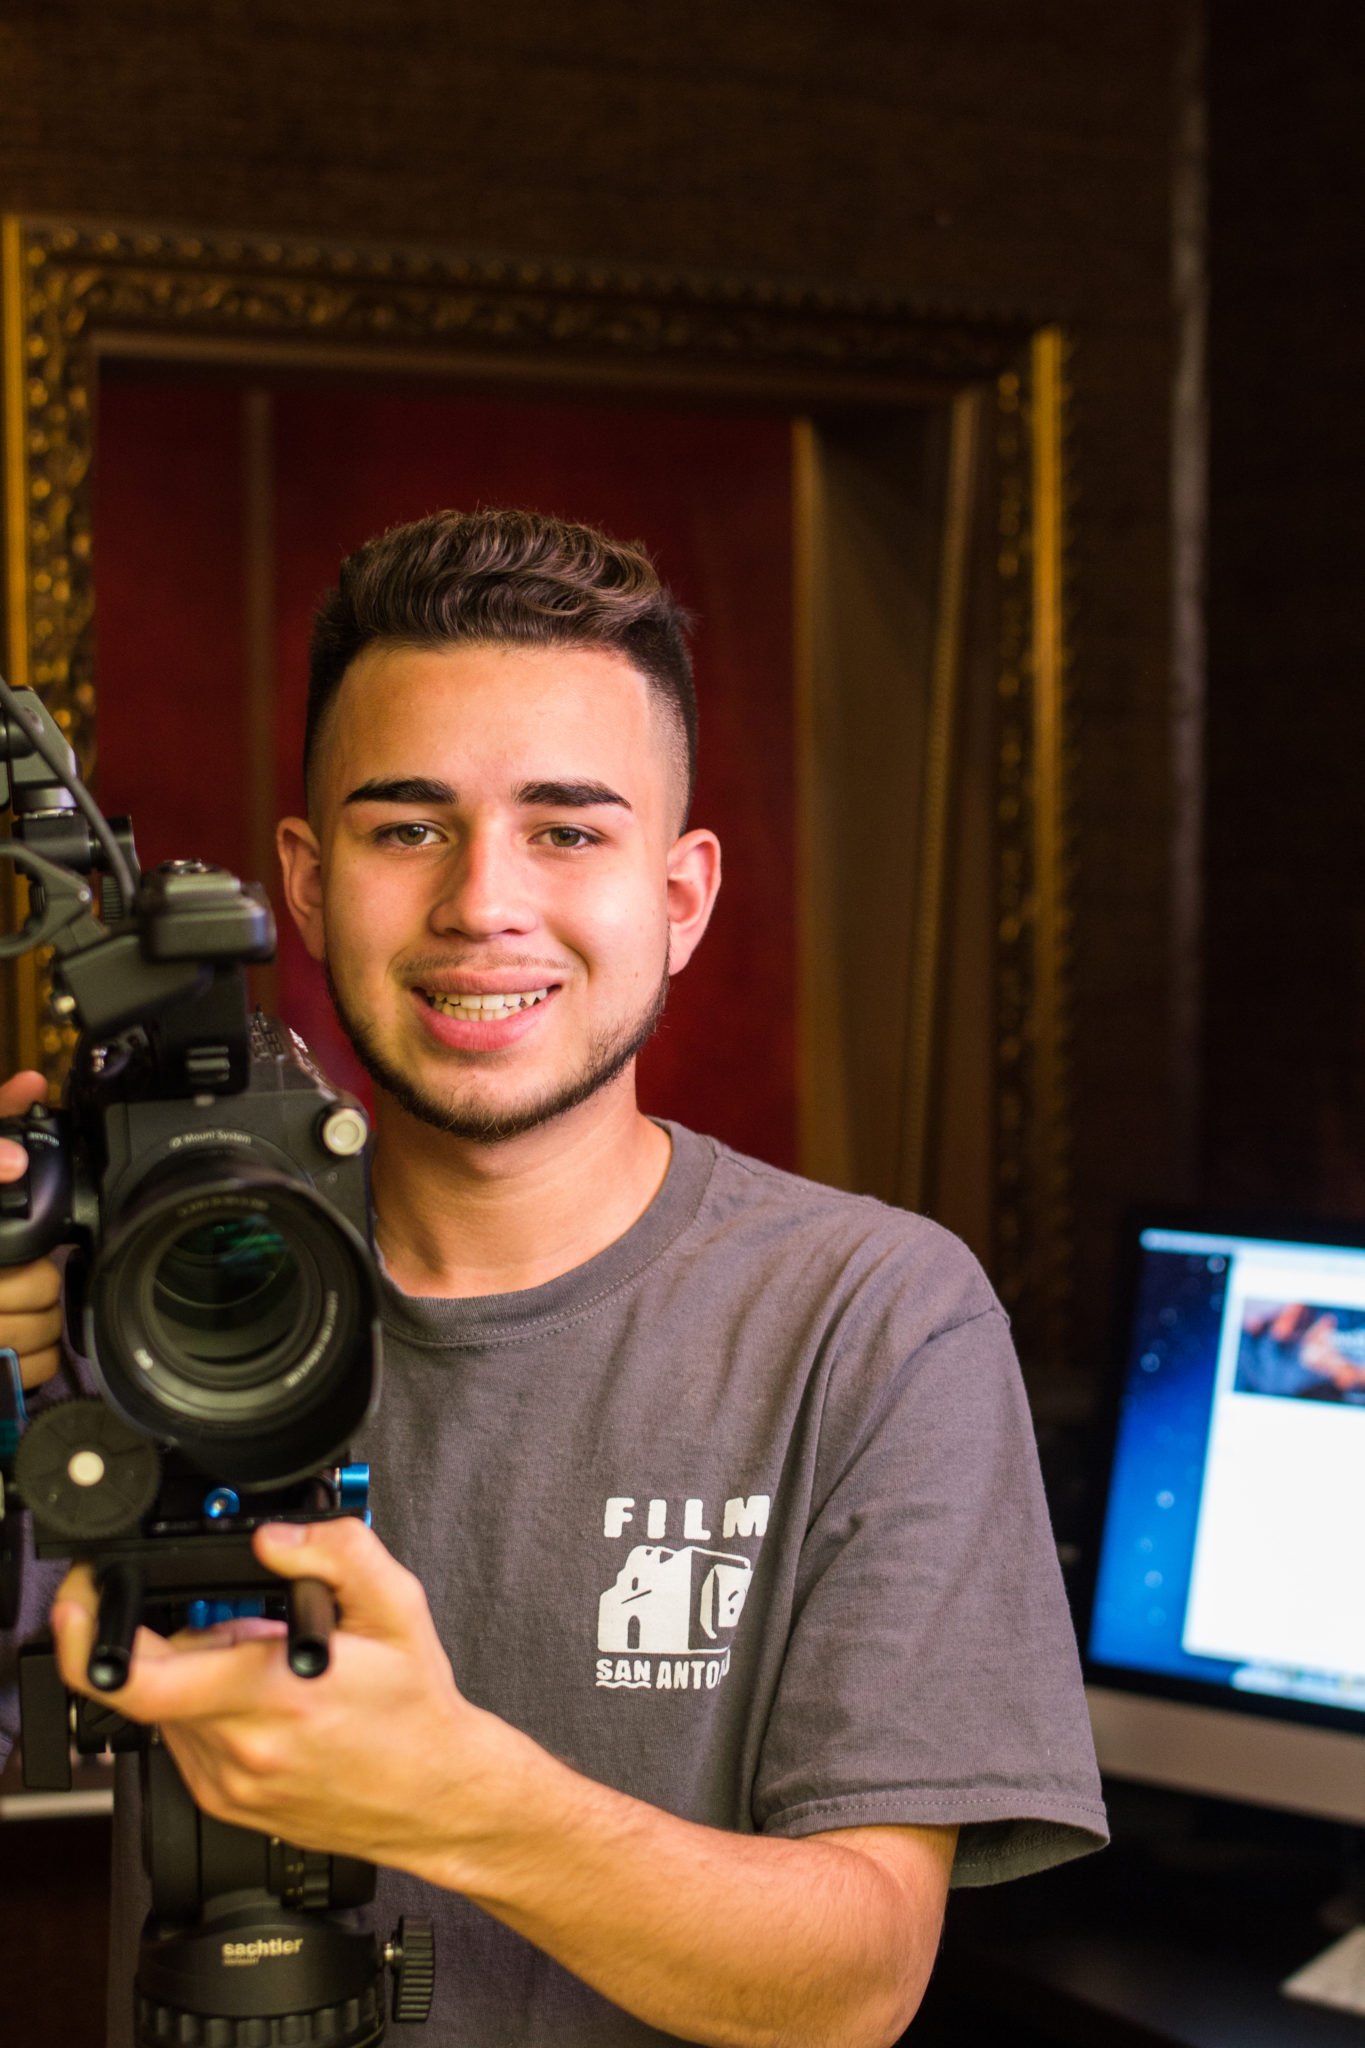 Say Sy student, film maker